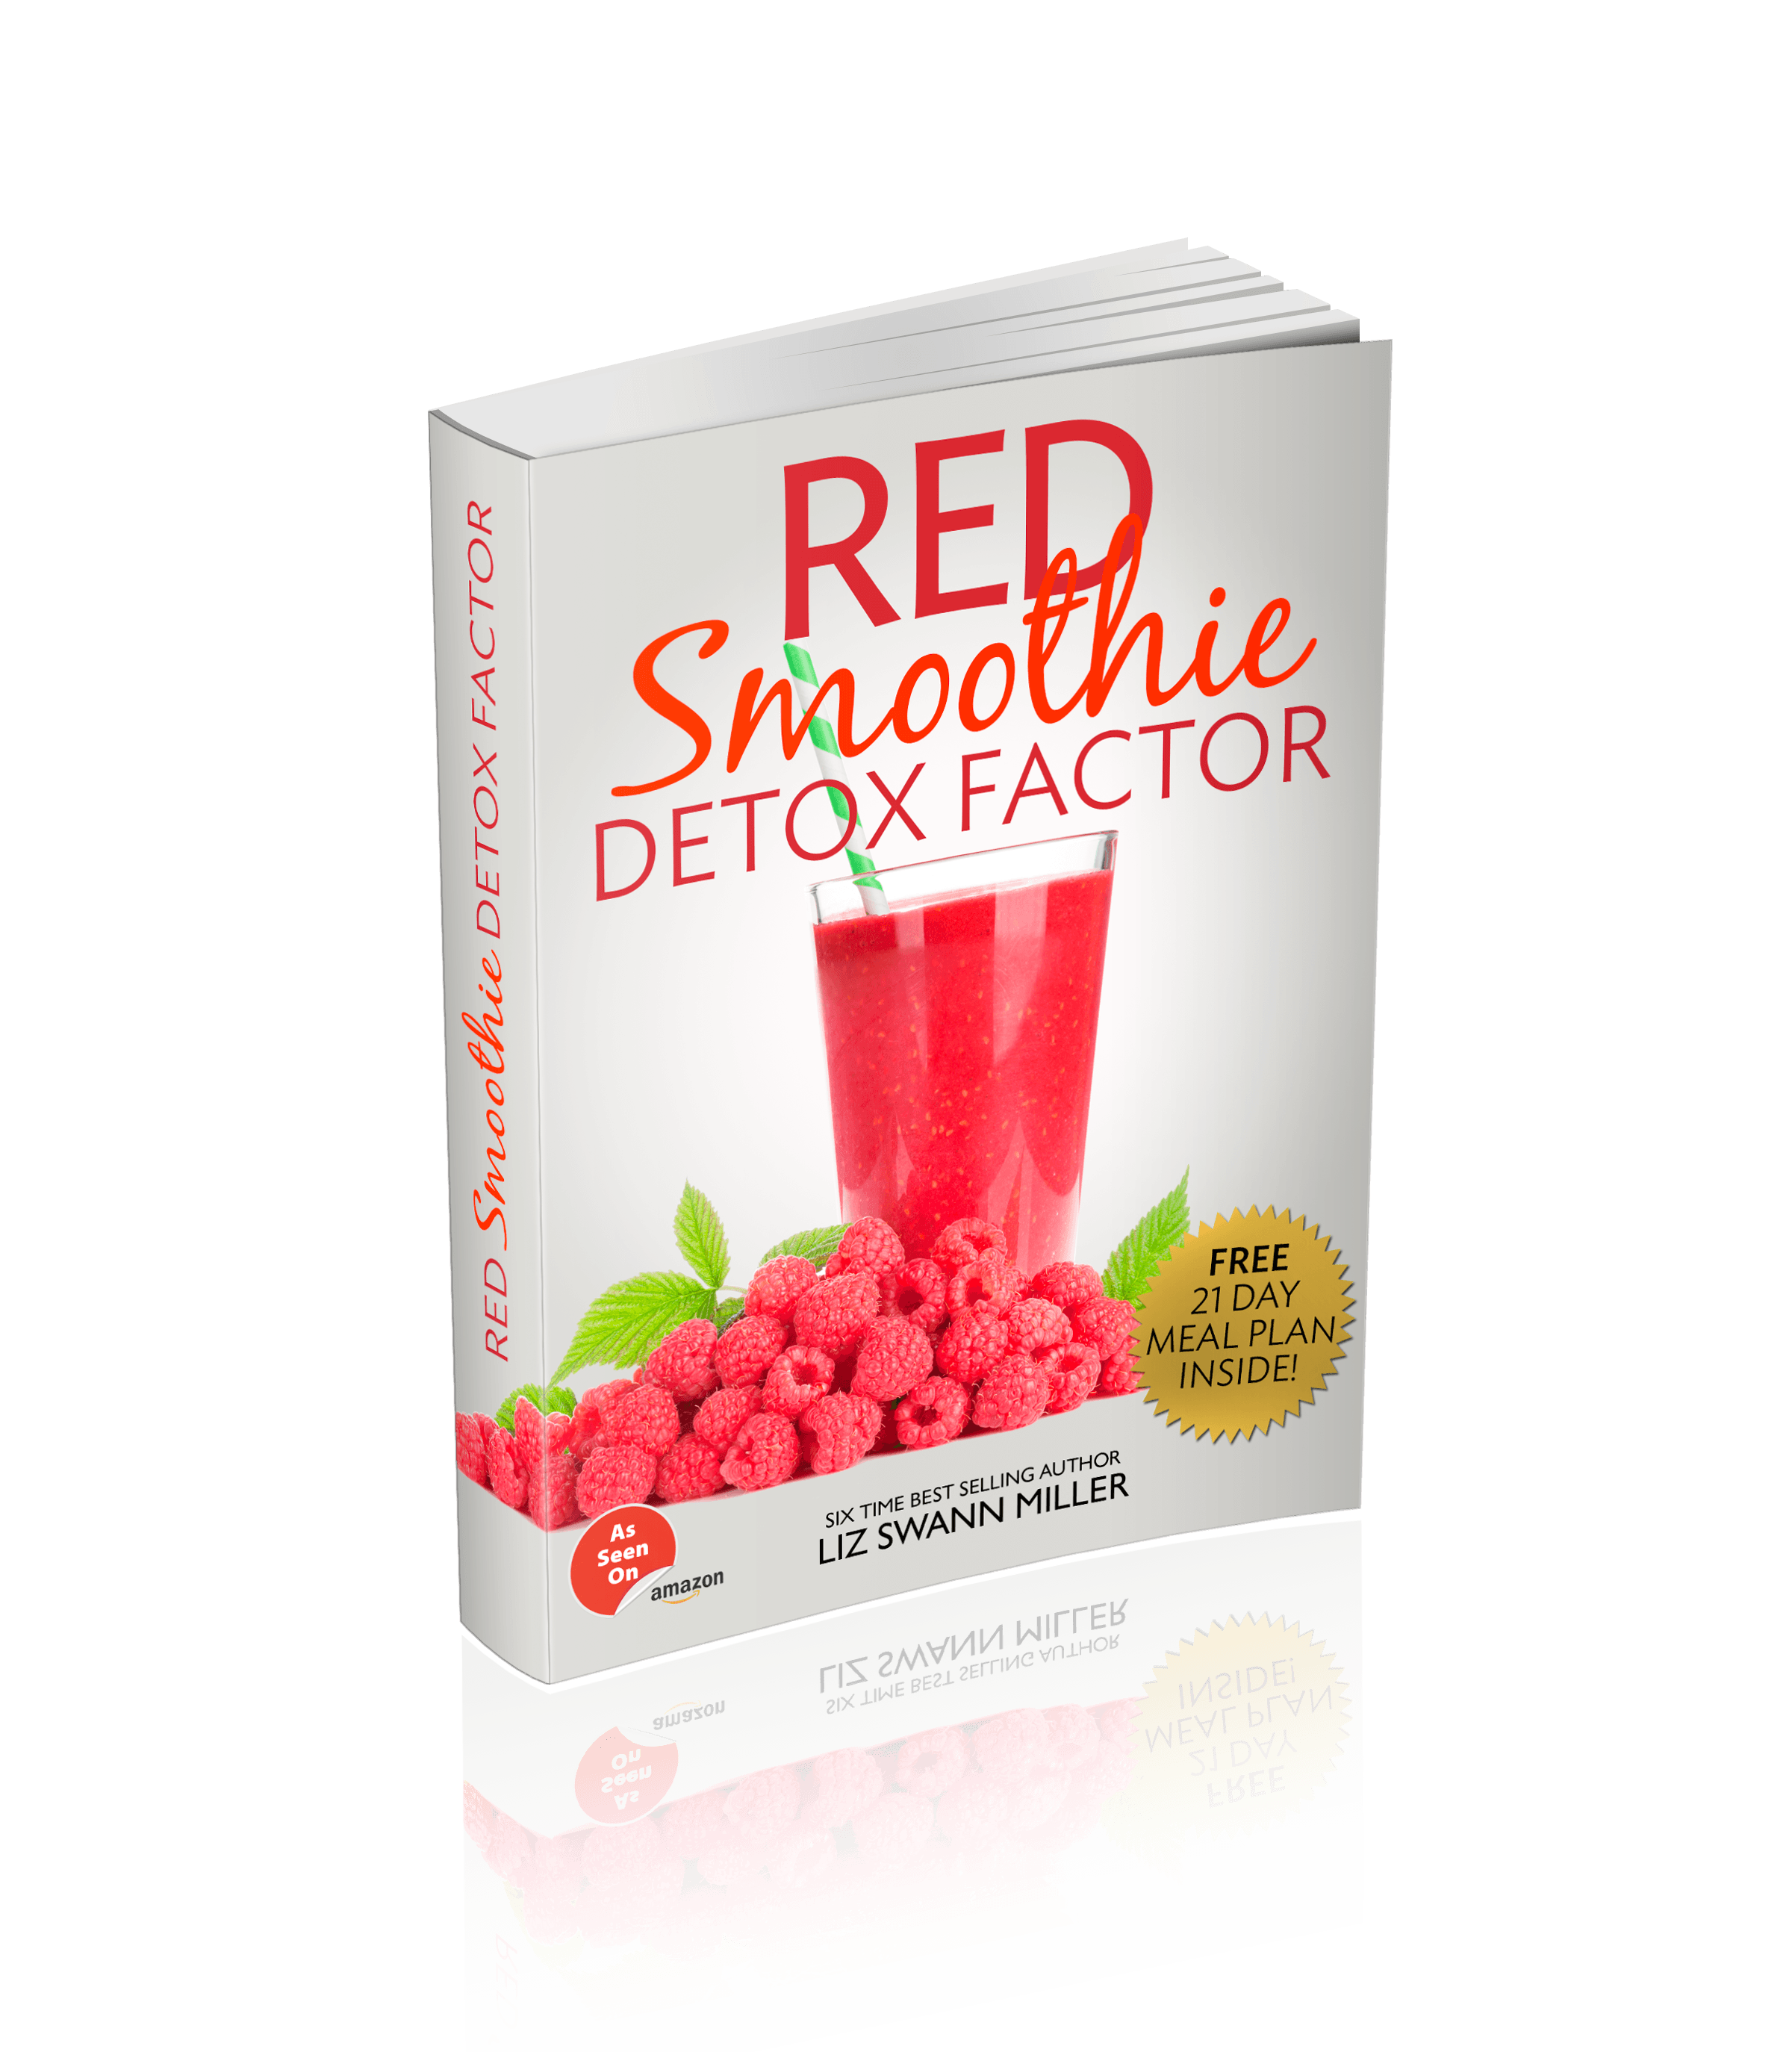 Red Smoothie Detox Factor Pdf Book Download Juicy